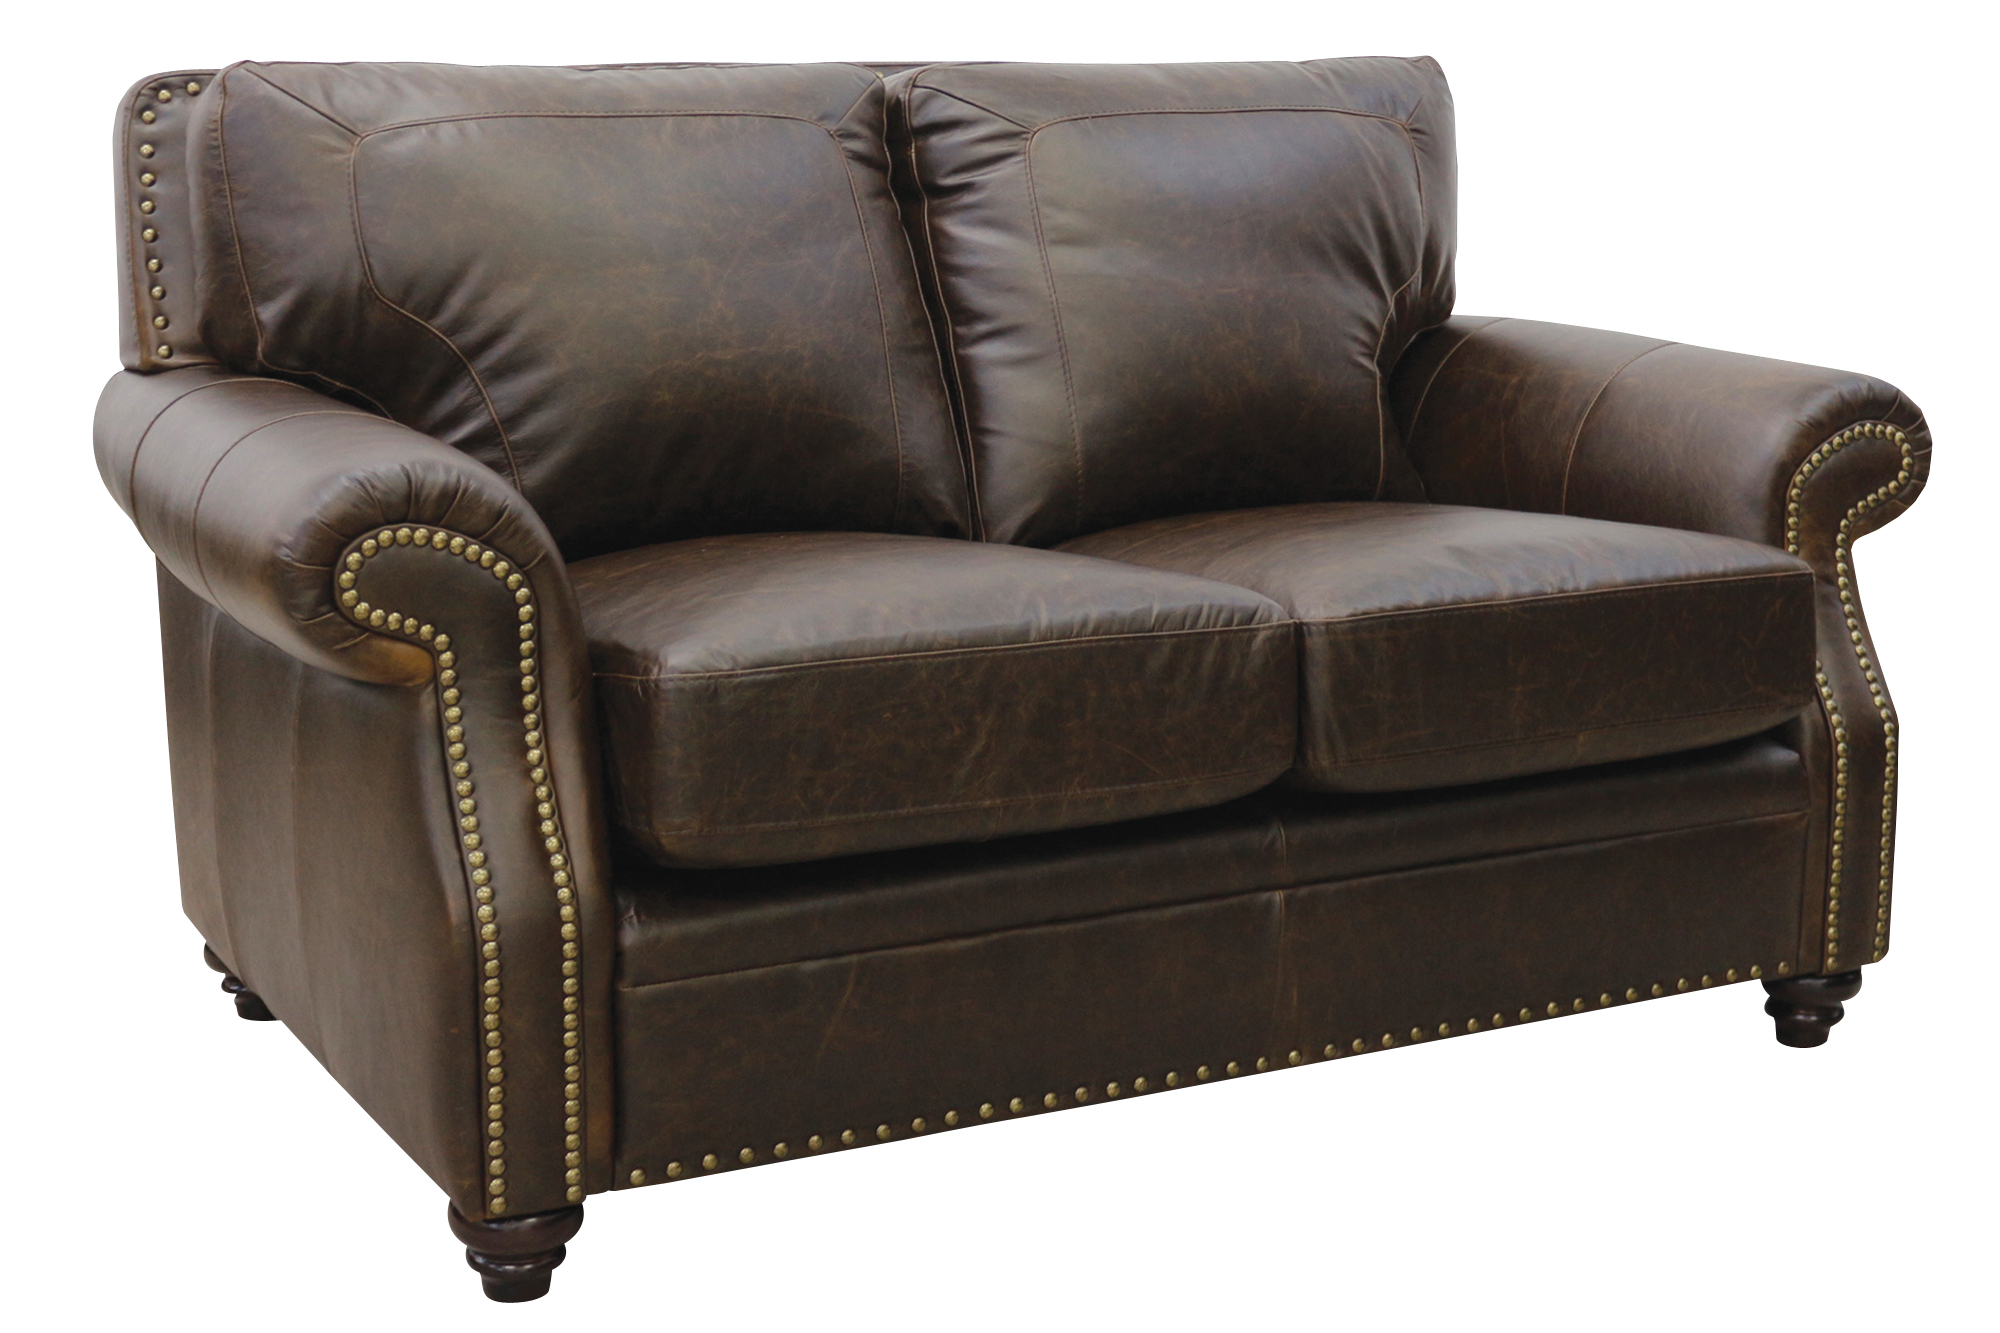 New Luke Leather Furniture Italian Made Quot Mason Quot Chocolate